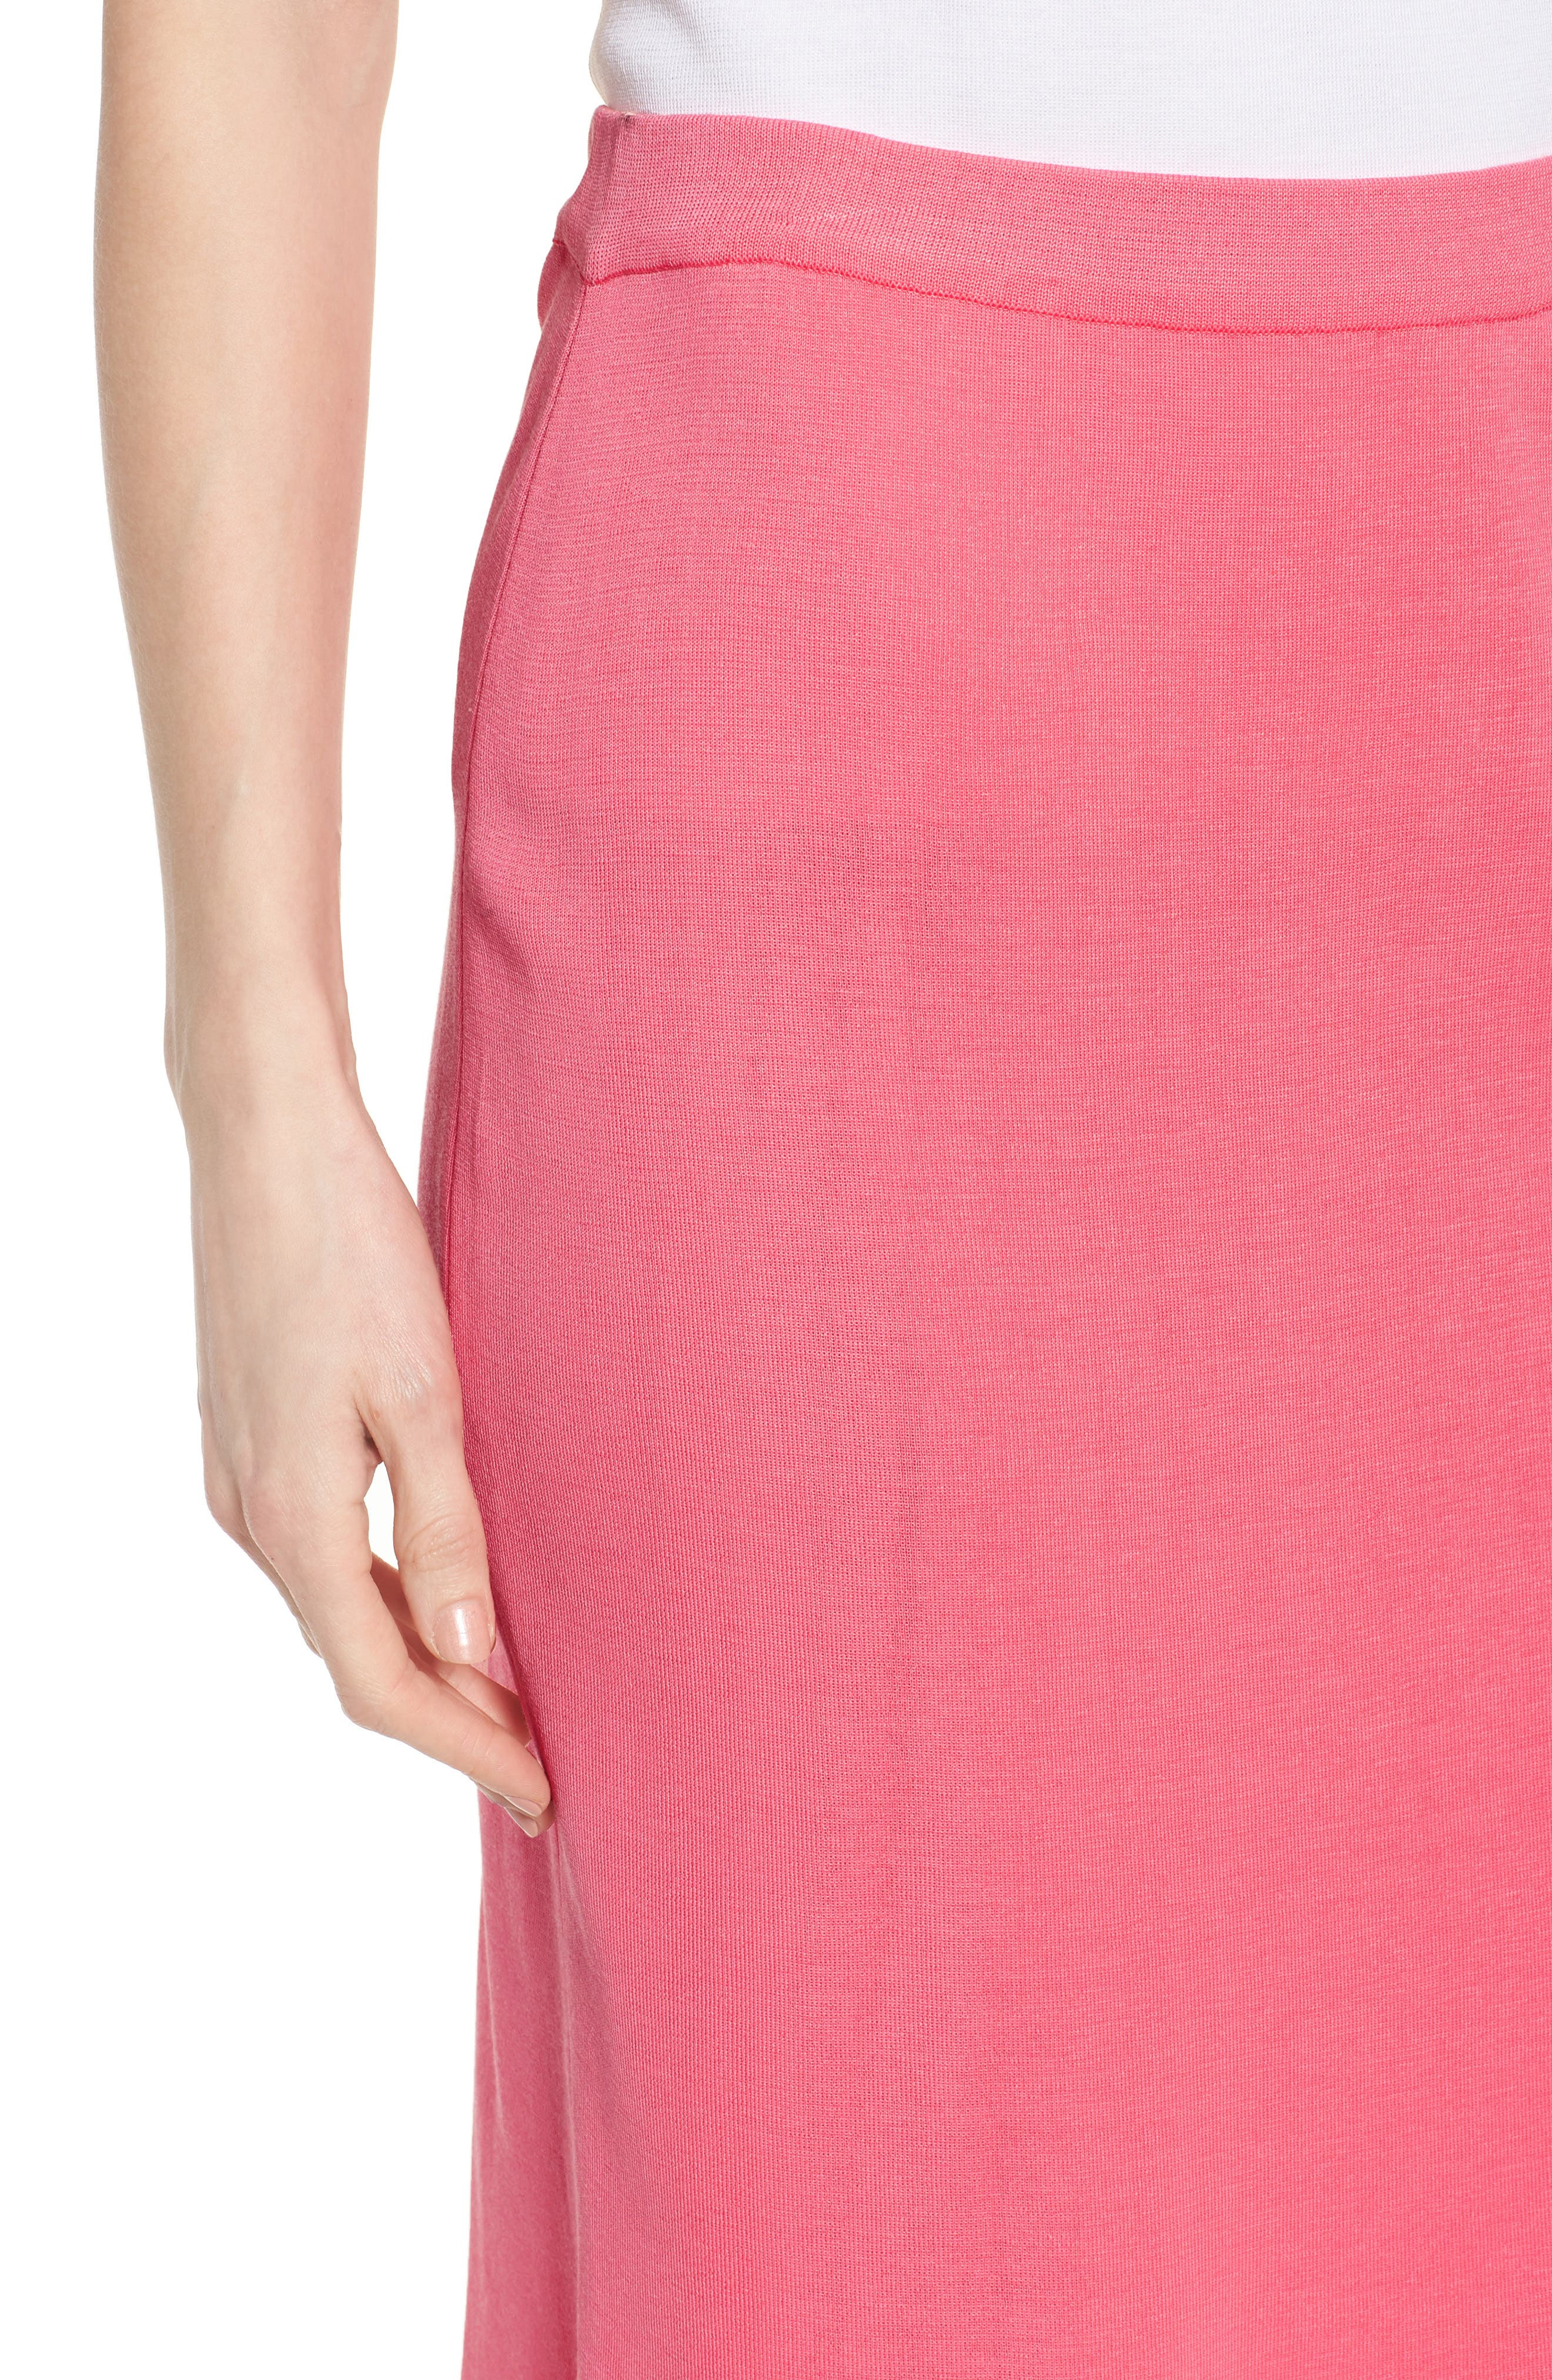 Straight Skirt,                             Alternate thumbnail 4, color,                             PINK LEMONADE